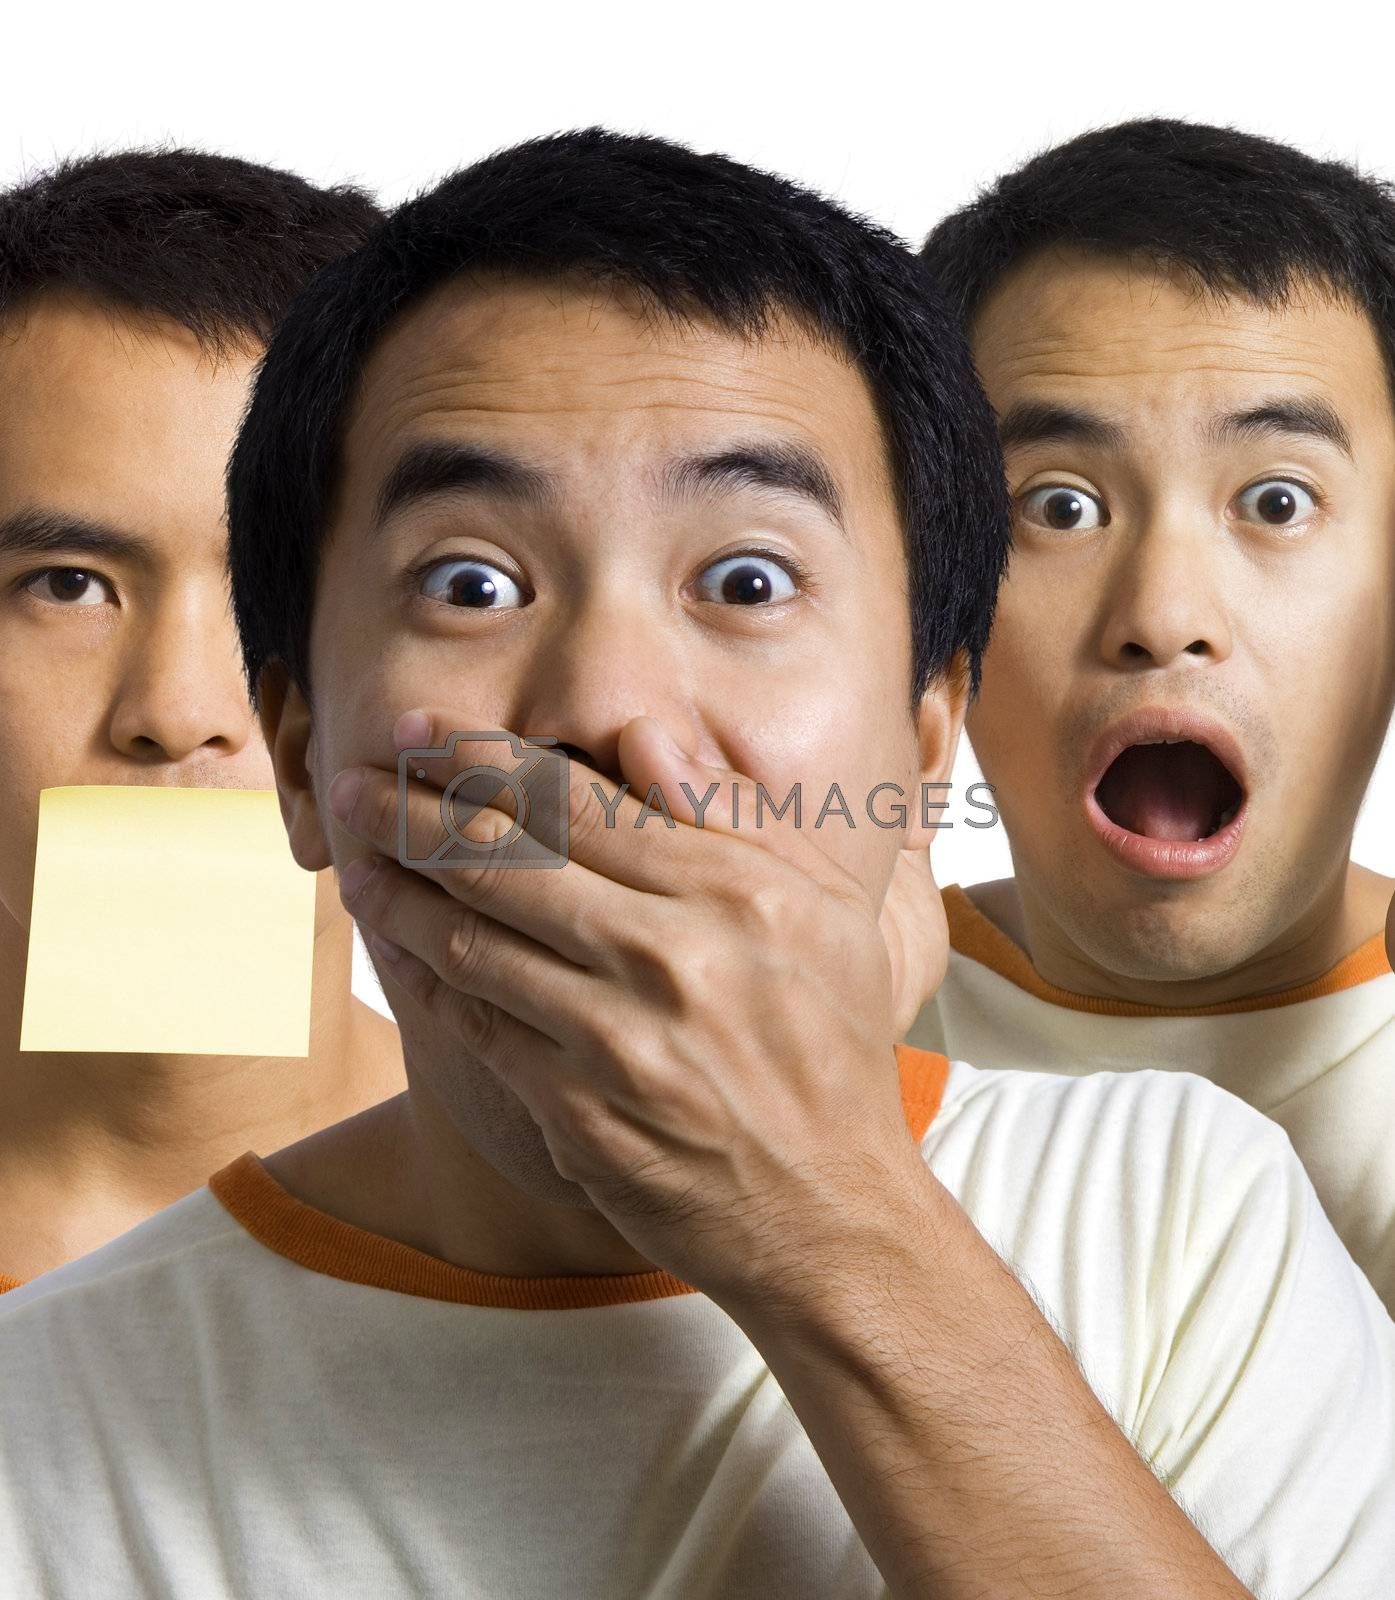 3 shocked, surprised and amazed men, one with his hand over his mouth